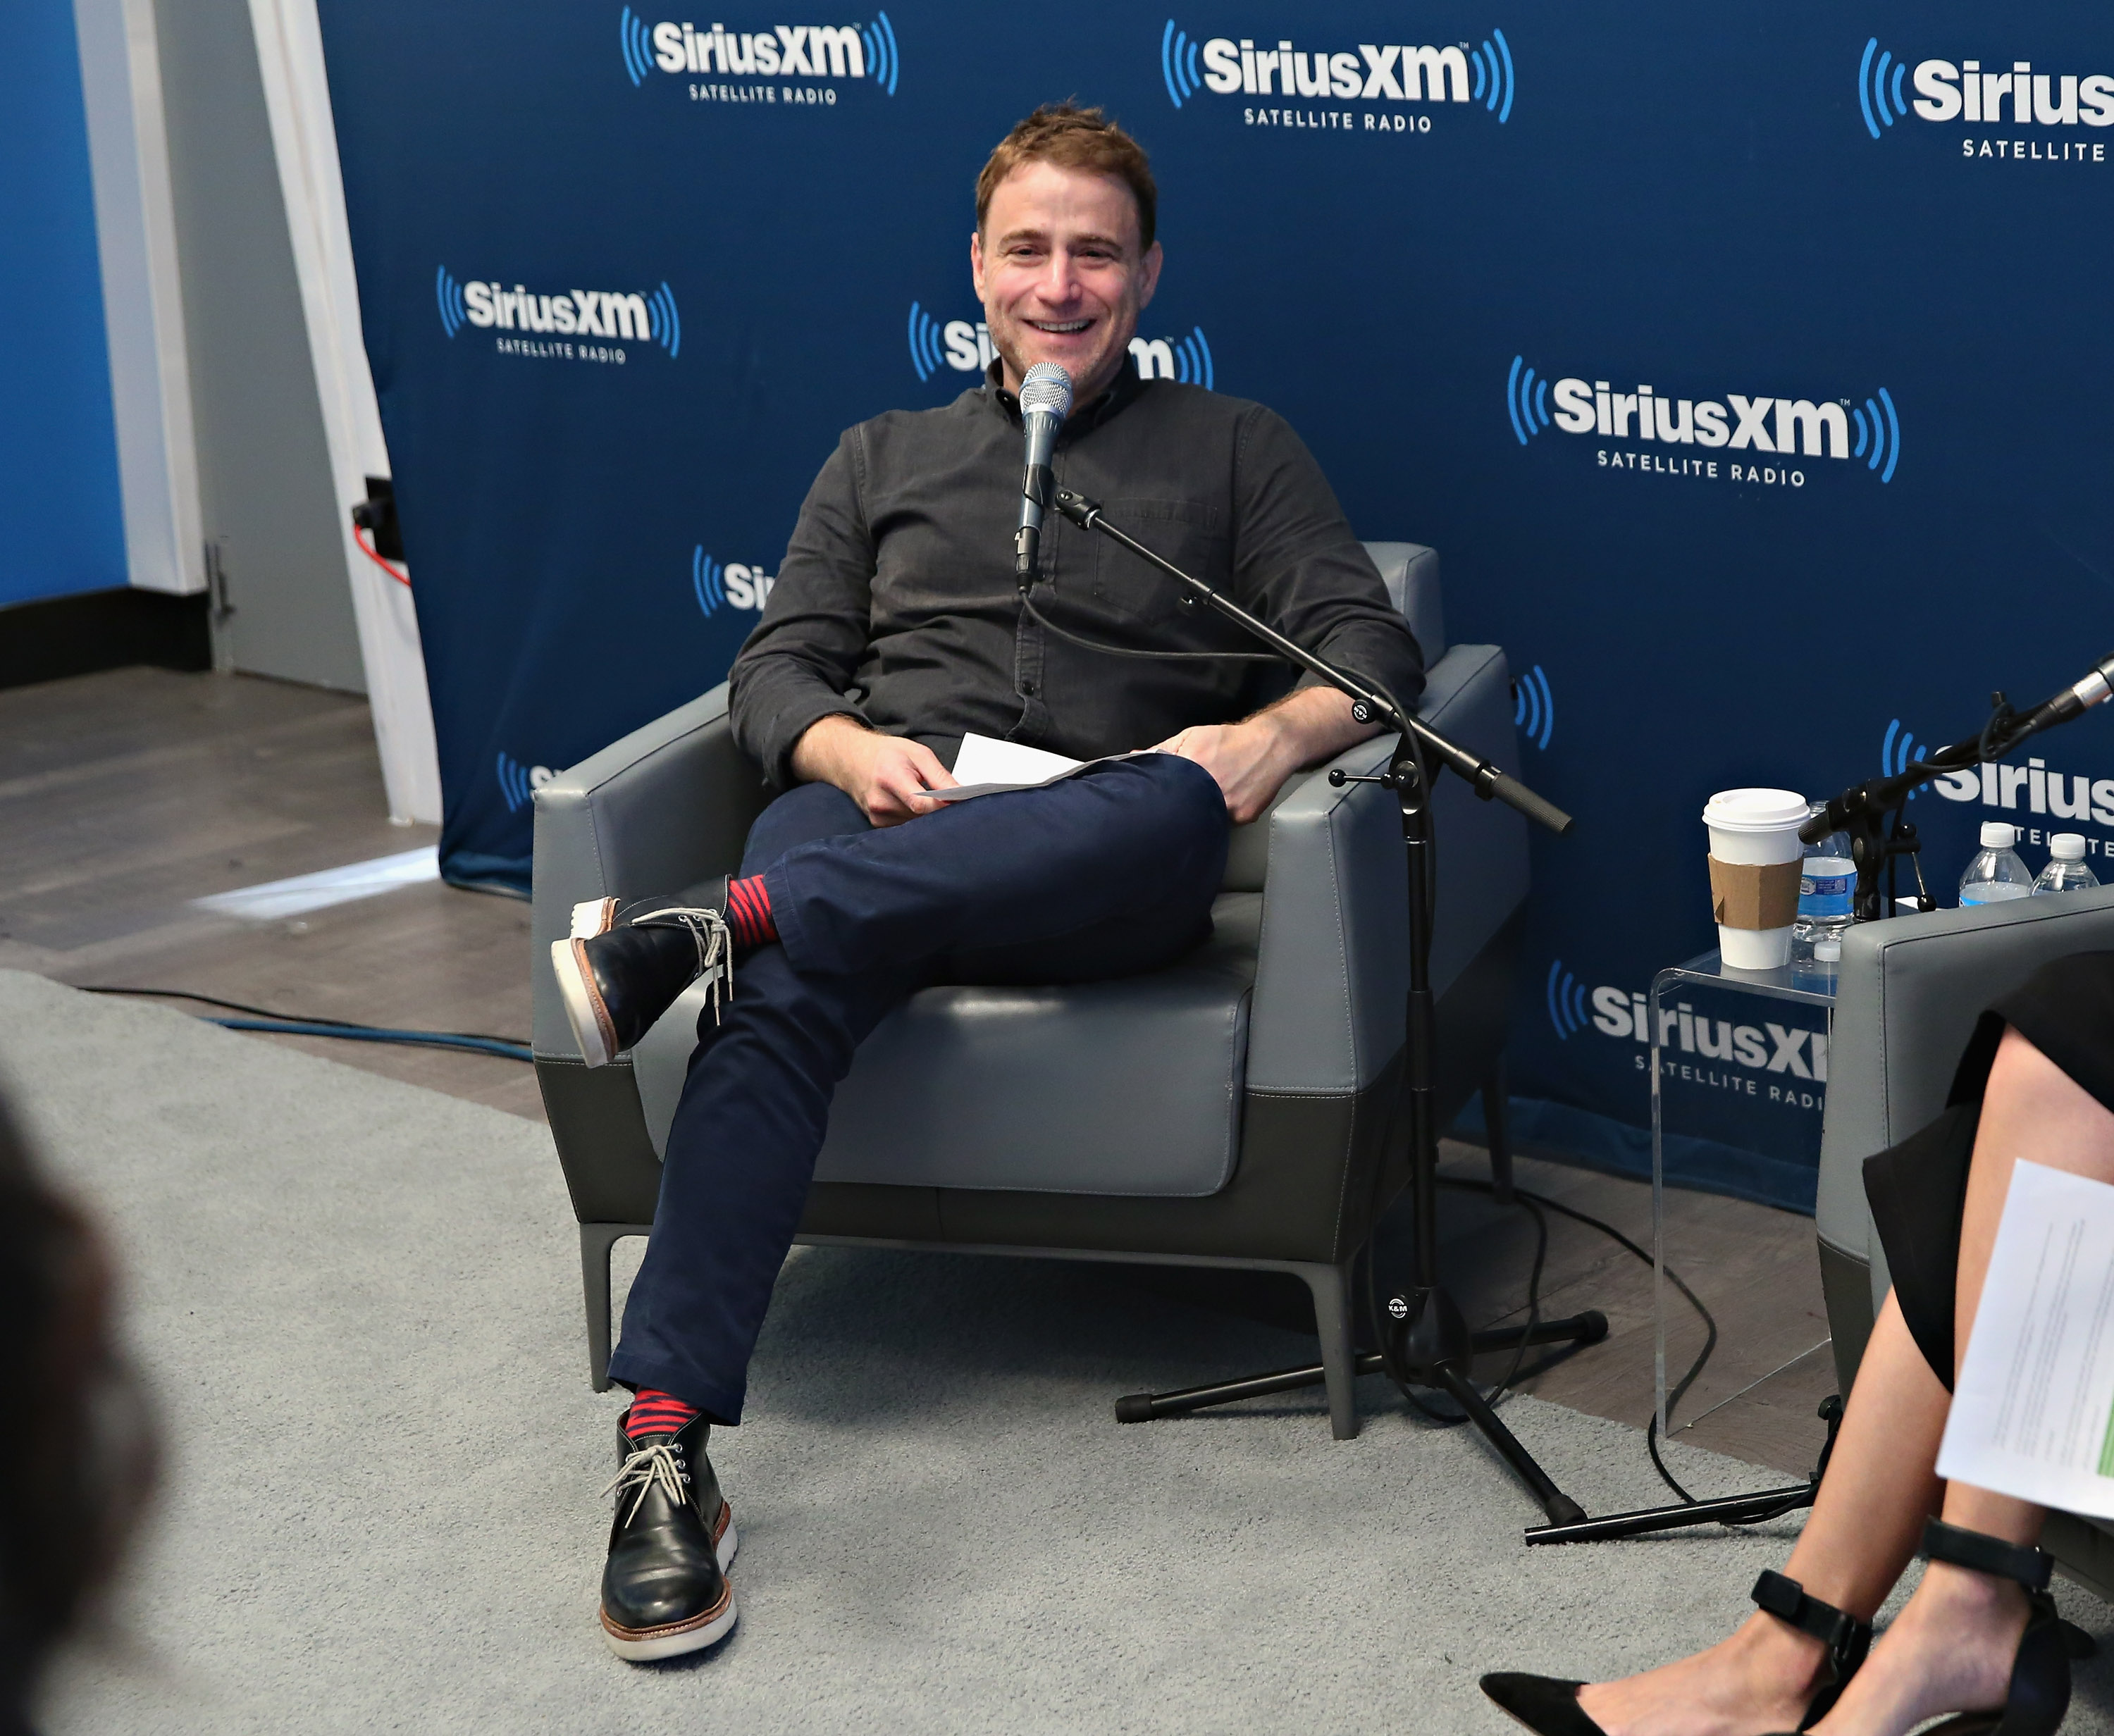 Slack Founder Stewart Butterfield speaking from a chair on the set of a SiriusXM radio broadcast.